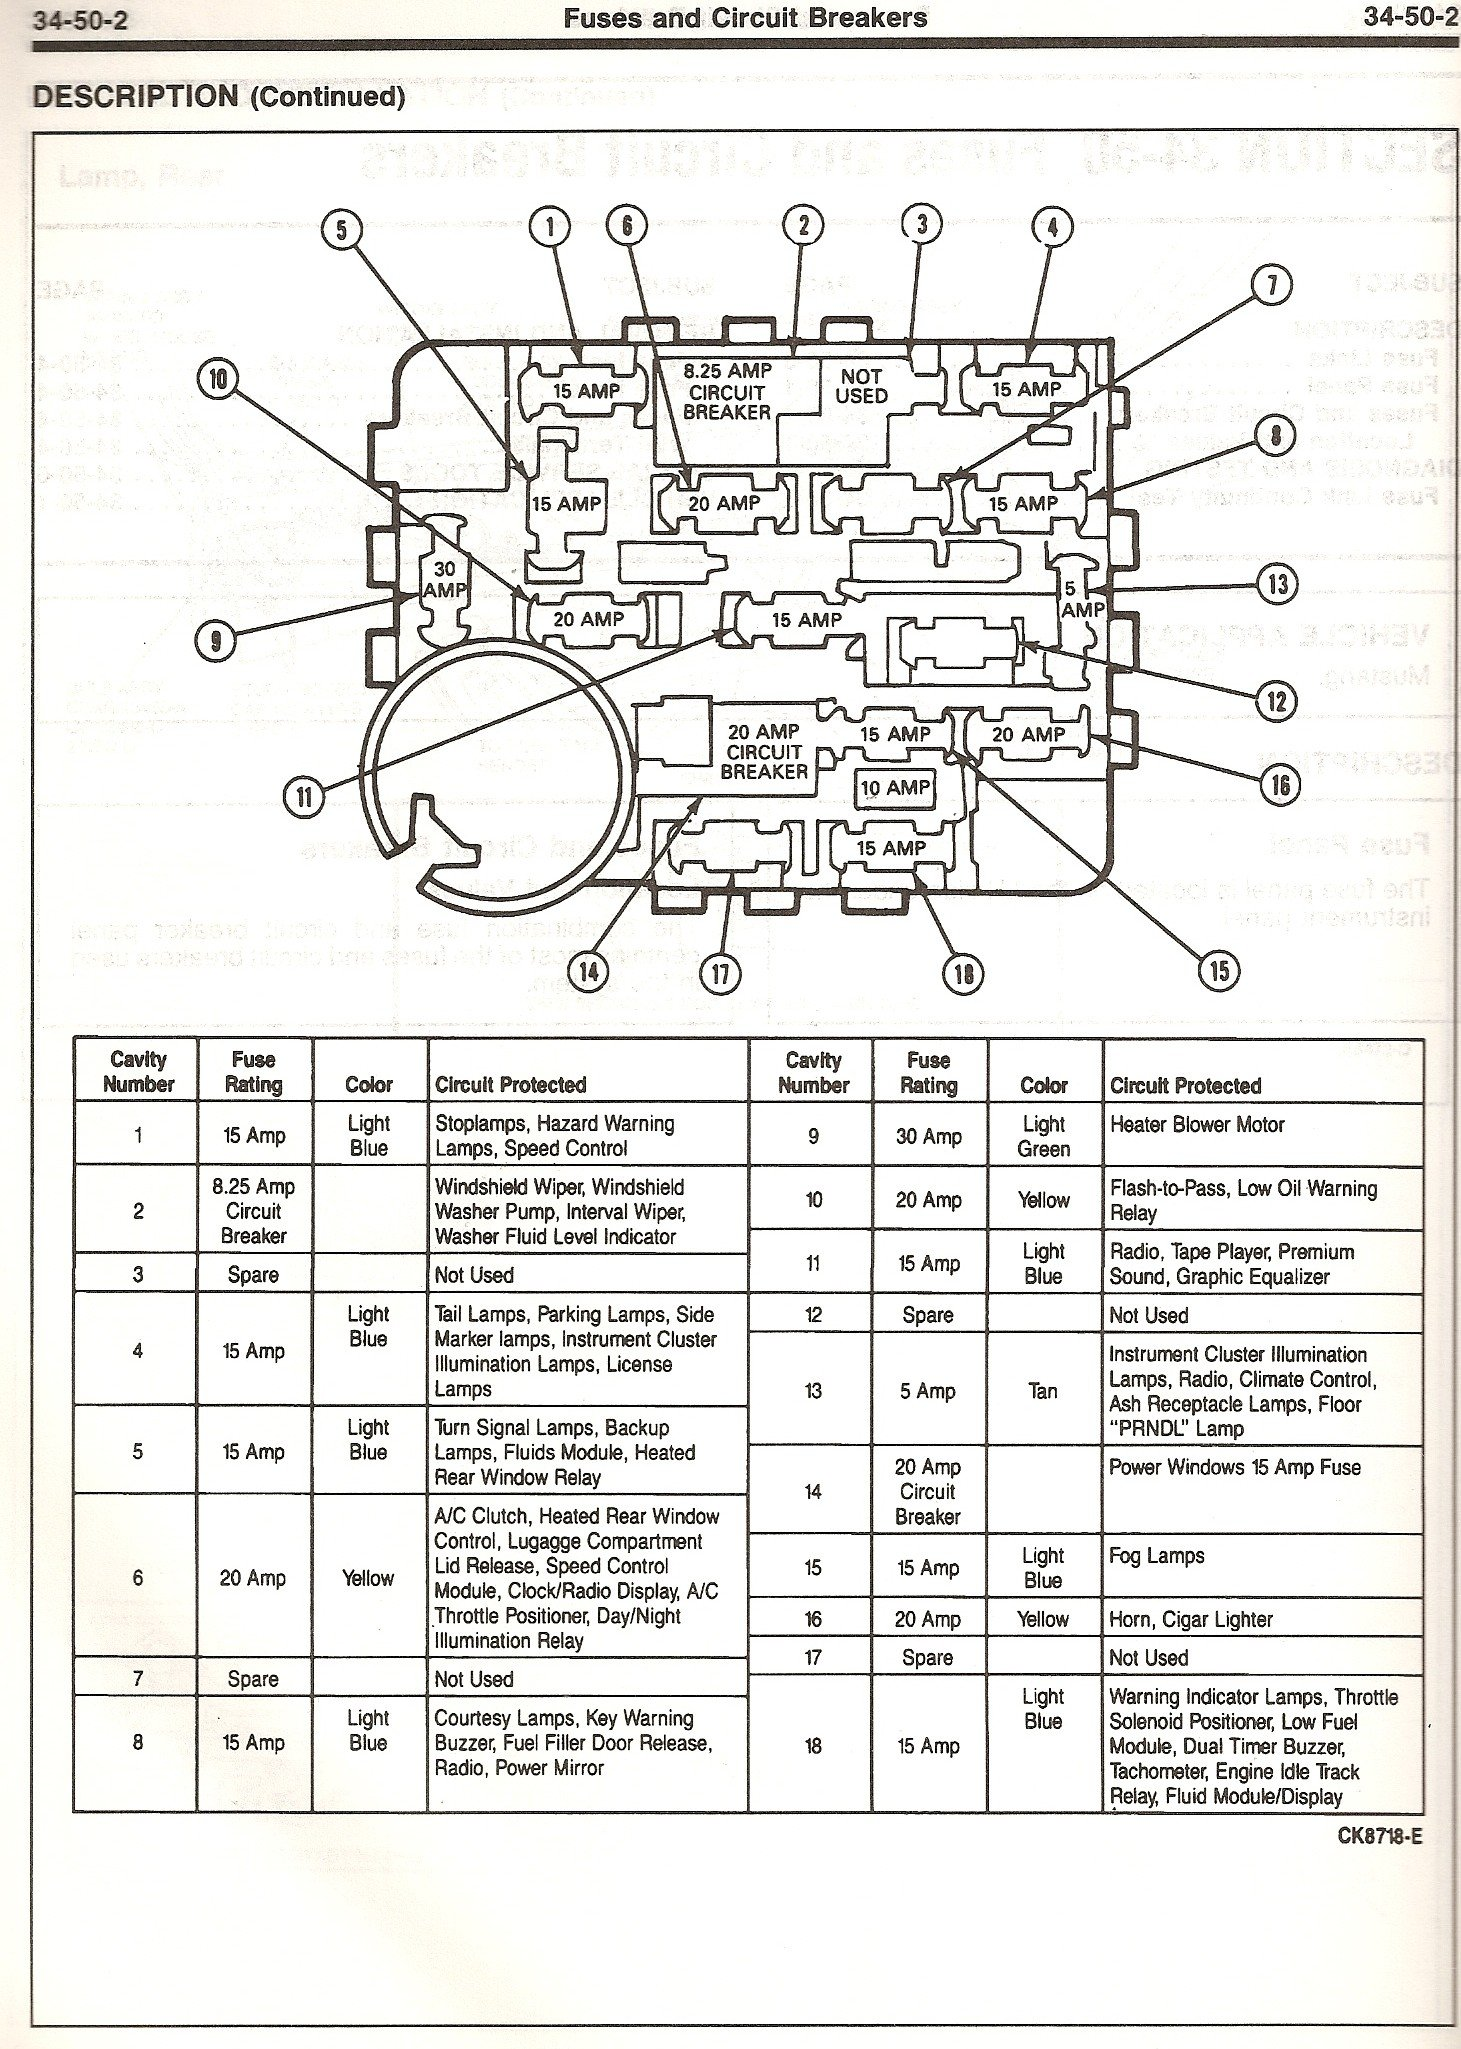 30633d1185070172 1990 2 3 mustang missing scan7 i need a fuse panel diagram 99 04gt mustangforums com 2001 mustang v6 fuse box diagram at honlapkeszites.co